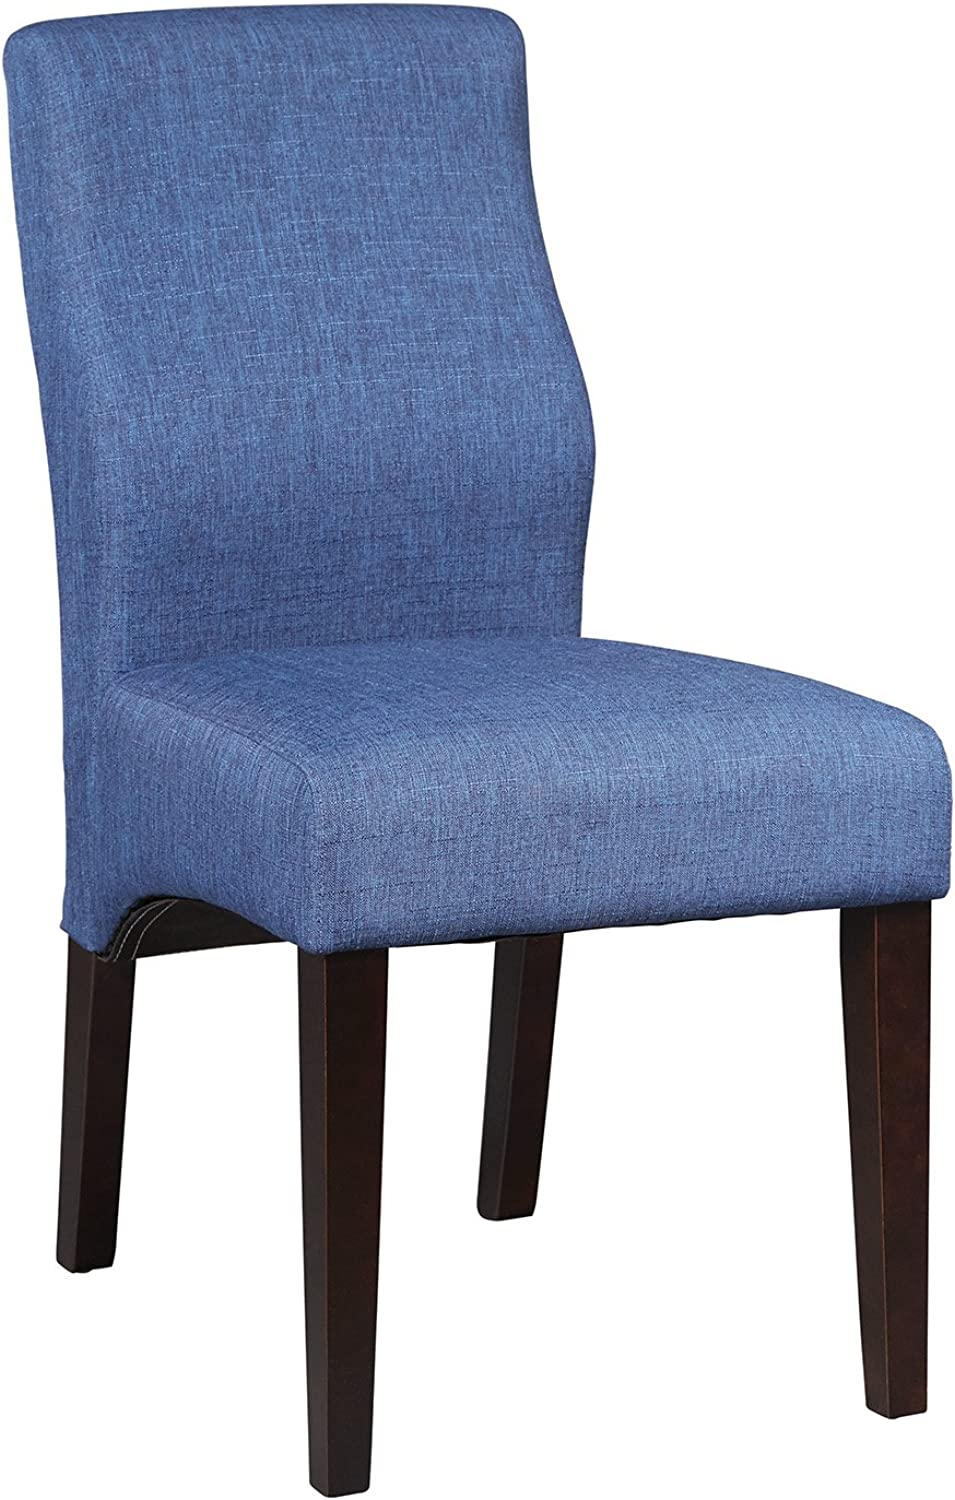 Benzara Well Made Upholstered Dining Chair Set of 2, bluee